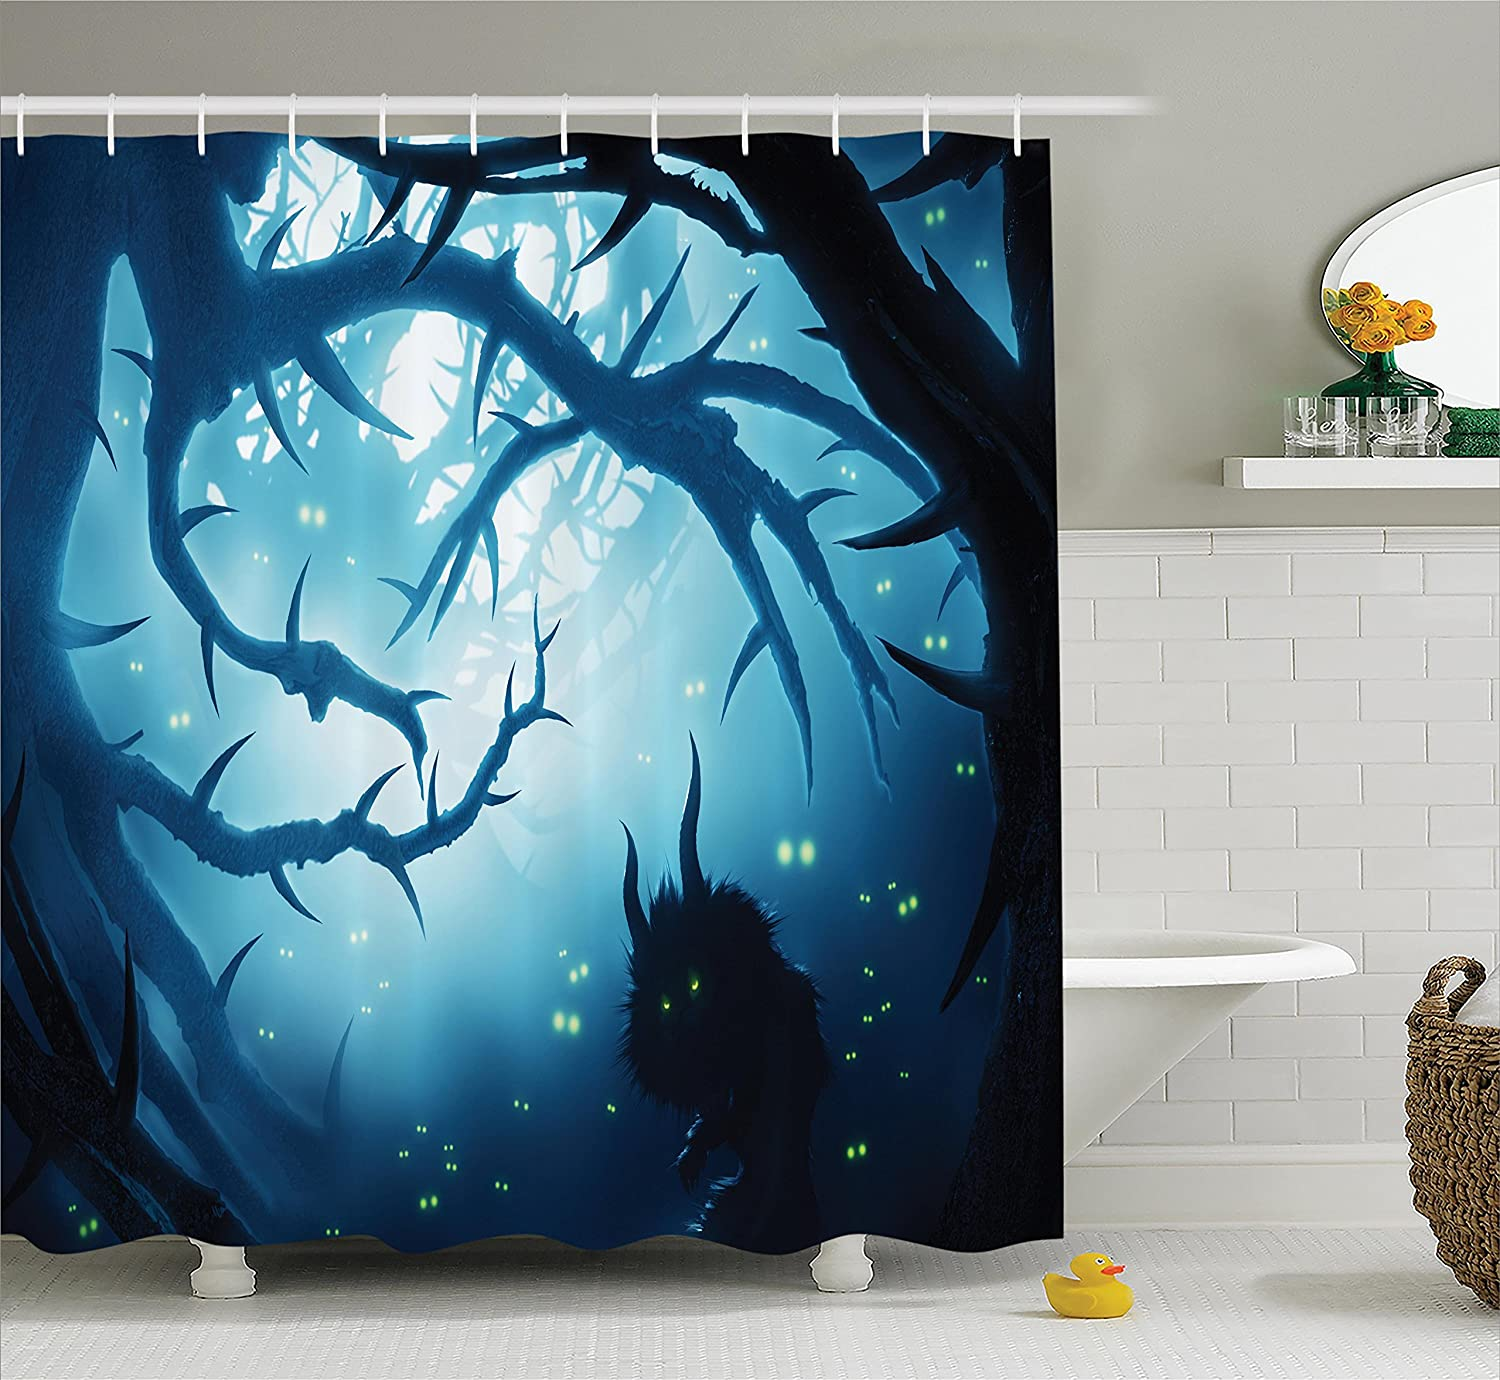 Rainforest shower curtain - Amazon Com Forest Shower Curtain By Ambesonne Winter Snow On Trees Blue And White Home Kitchen